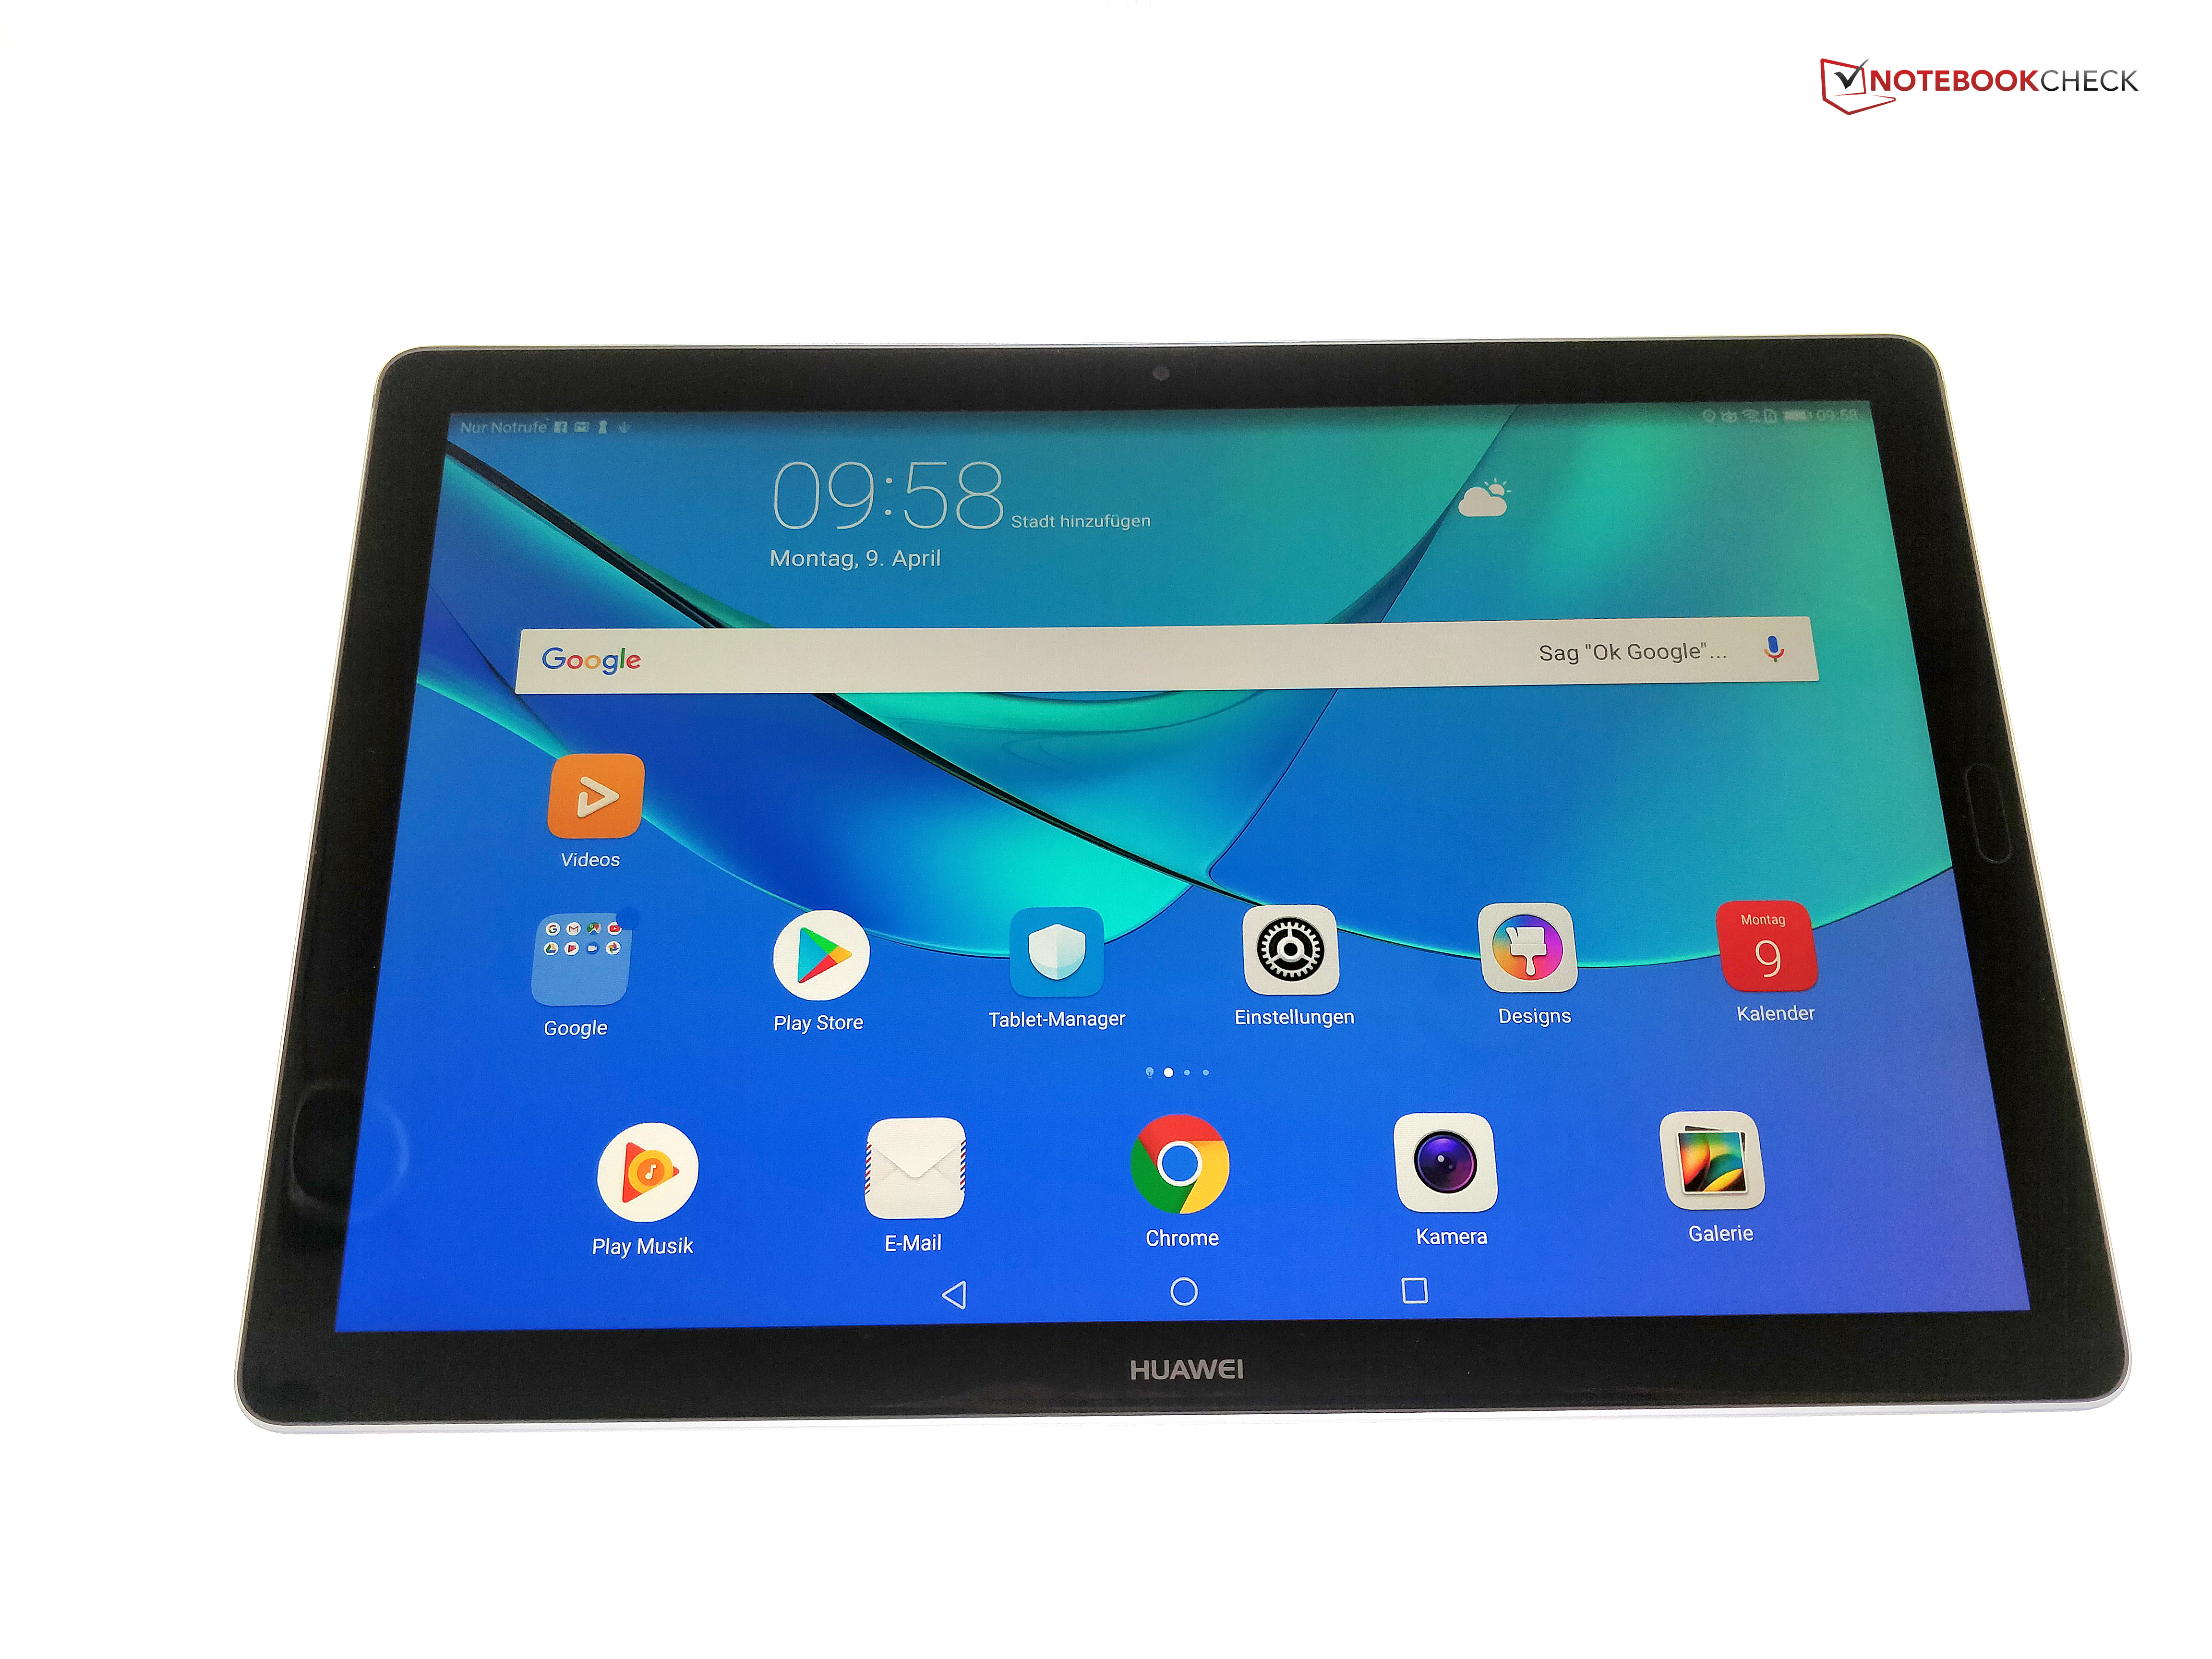 Huawei MediaPad M5 (10.8-inches, LTE) Tablet Review ...